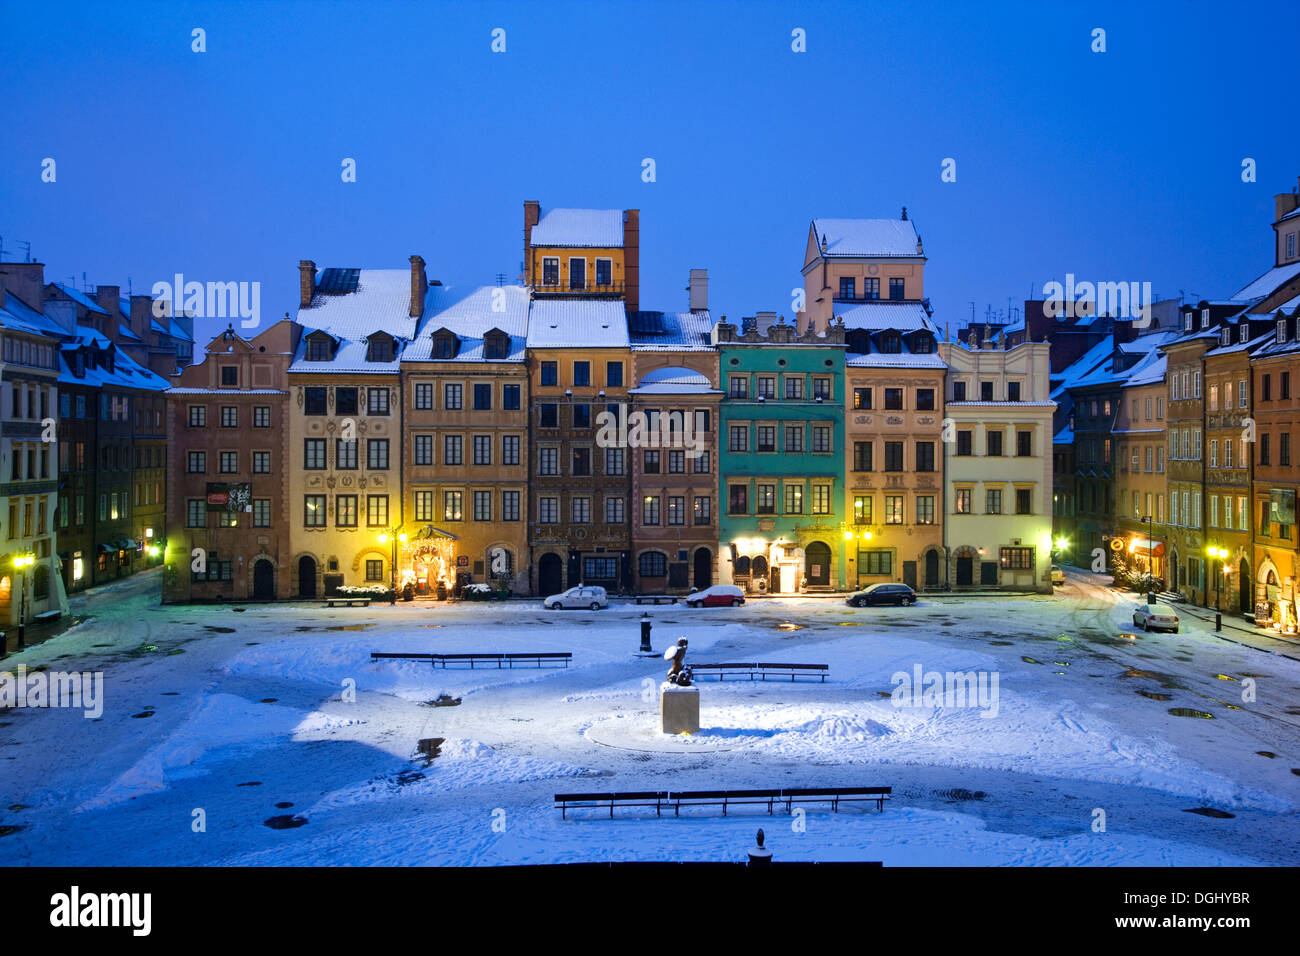 Winter twilight in the Old Town Square in Warsaw. - Stock Image